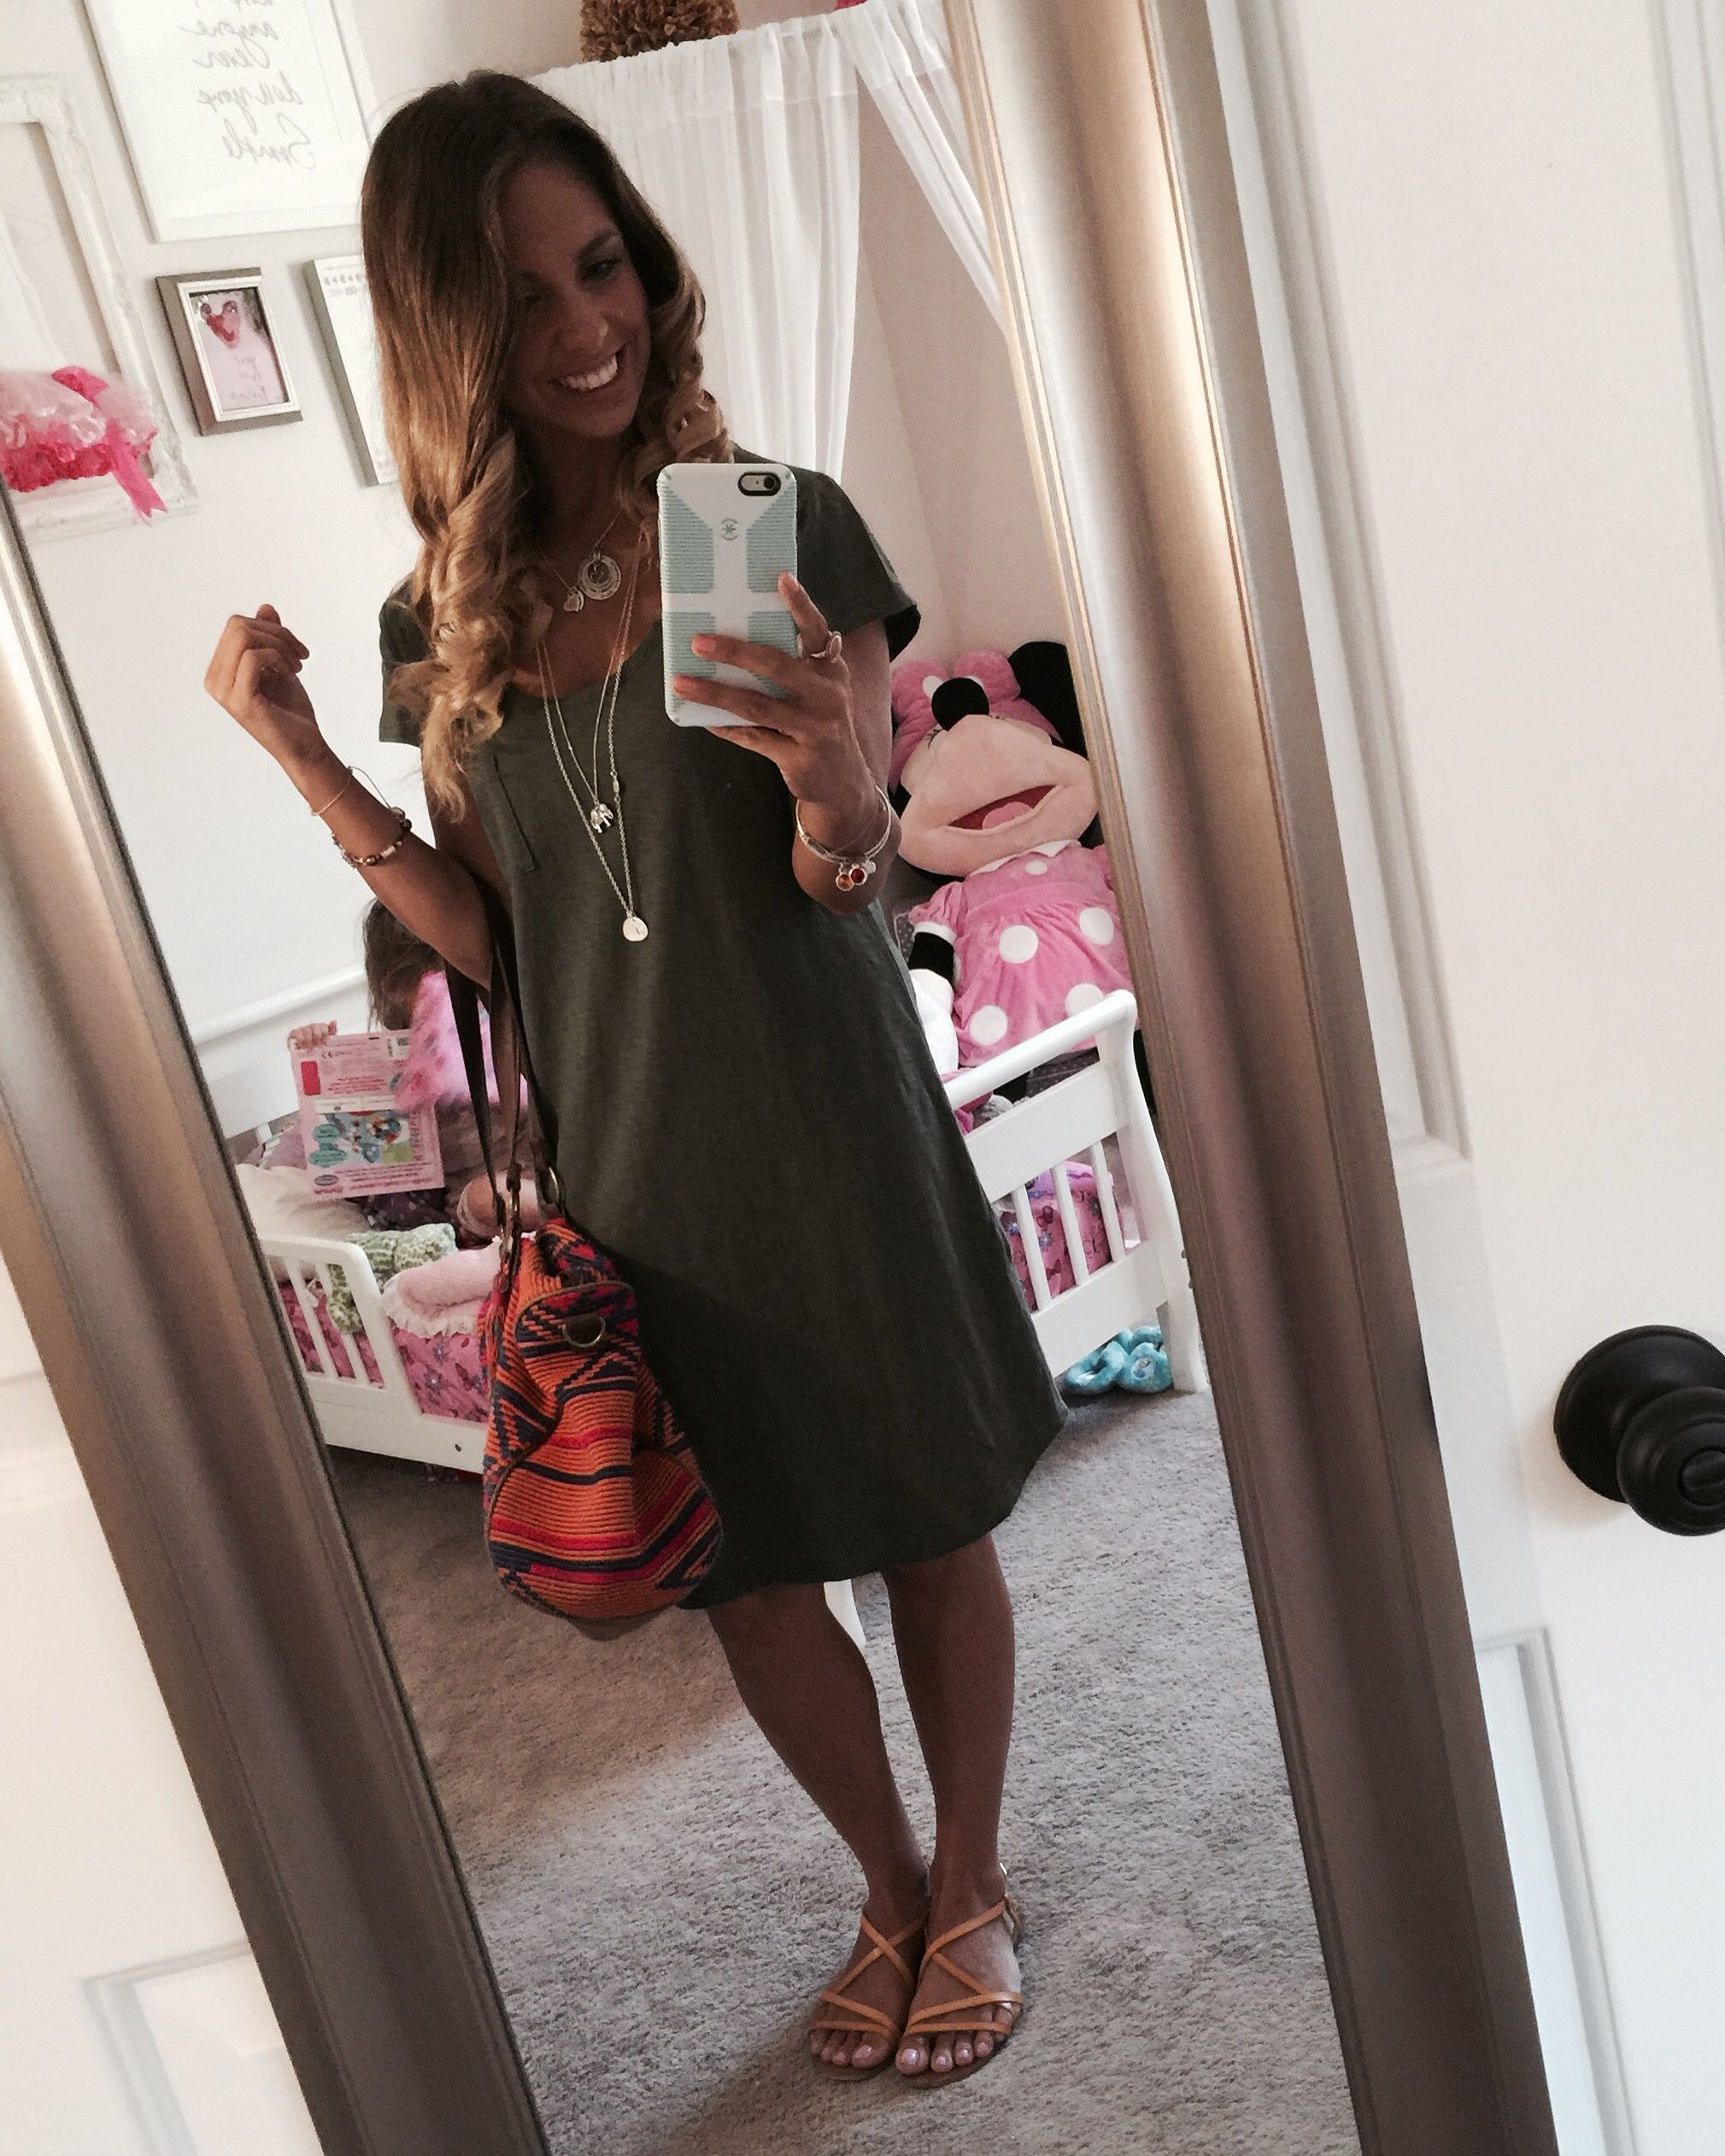 Olive Green V Neck Distressed T Shirt Dress And Strappy Tan Leather Sandals From Gap Factory Aztec Distressed T Shirt Dress Shirt Dress Spring Summer Fashion [ 2523 x 2019 Pixel ]